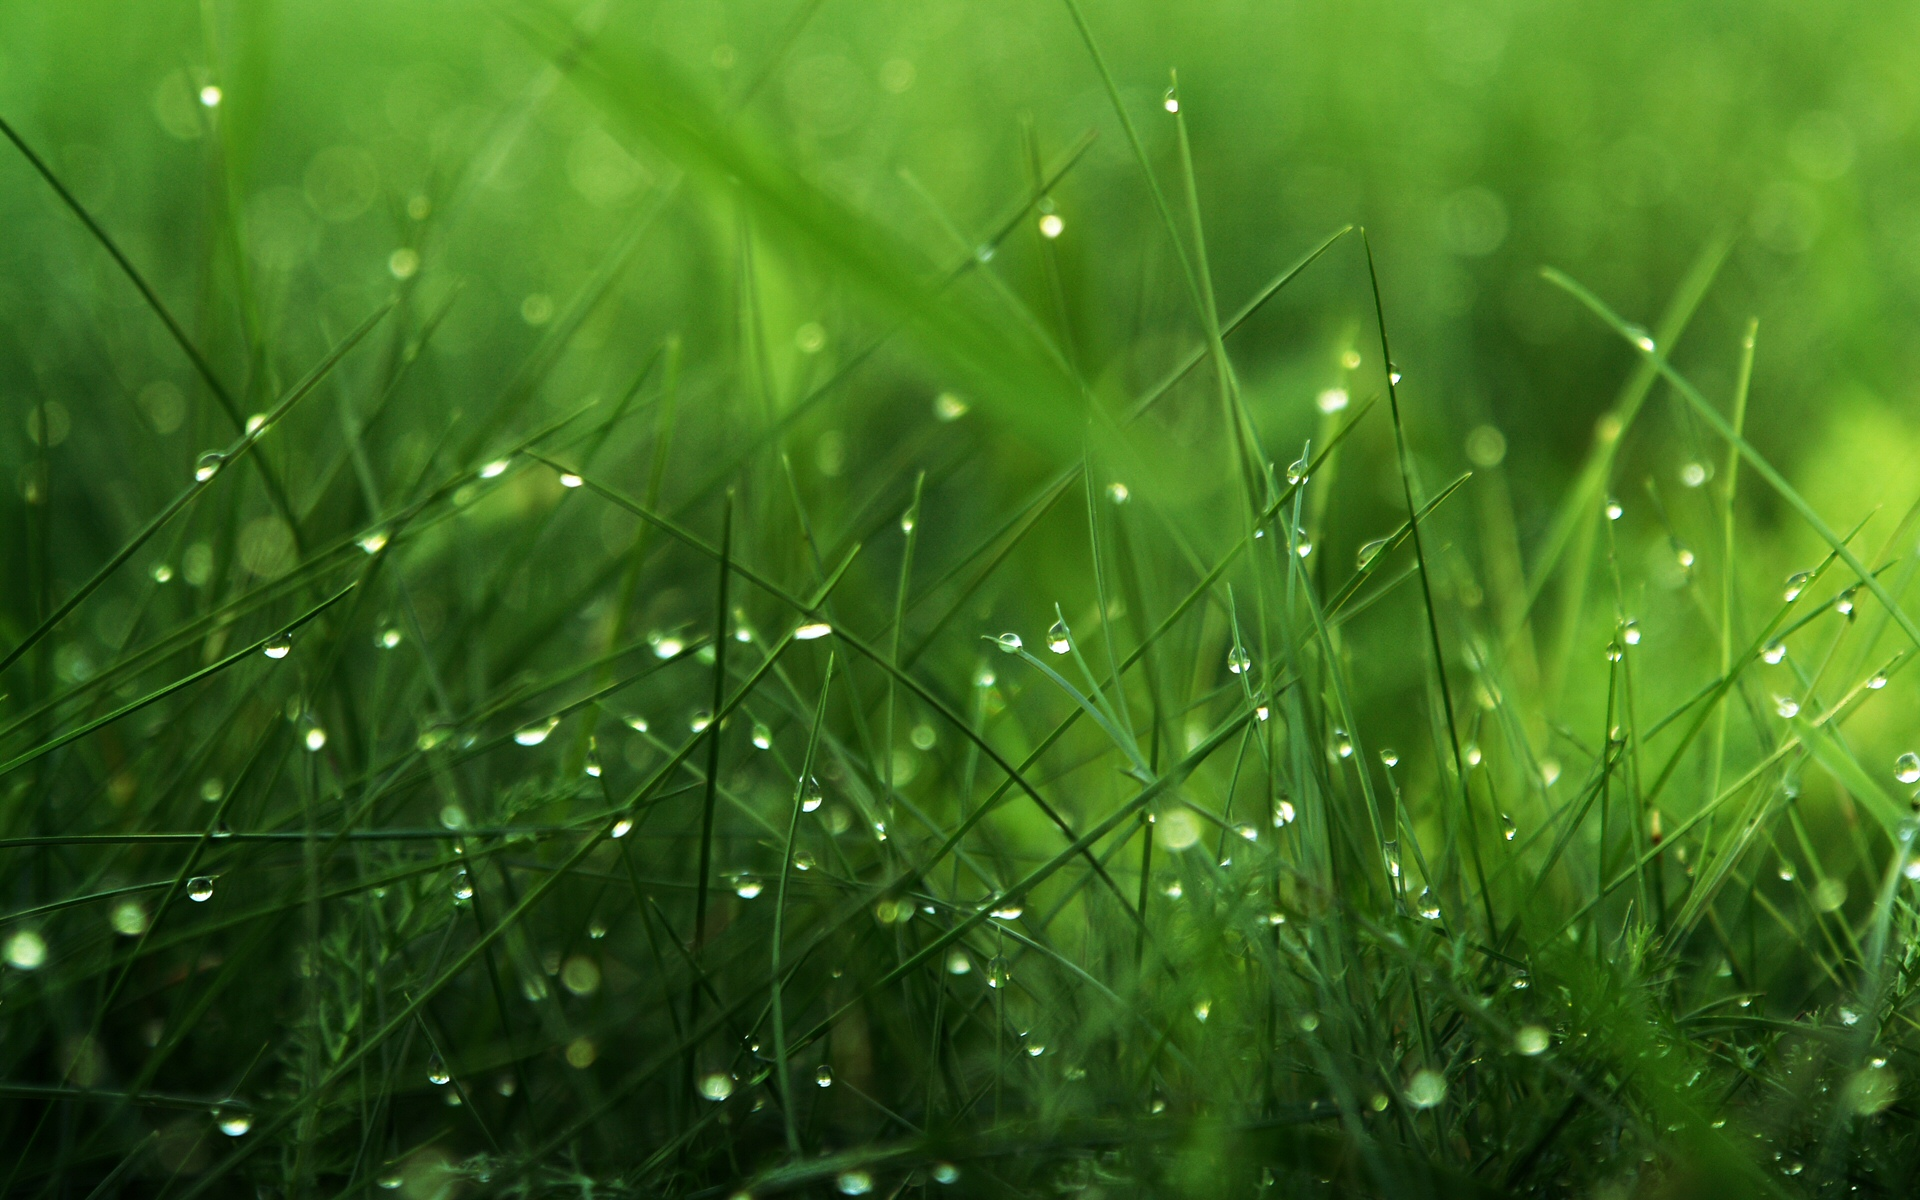 Grass Wallpaper 04